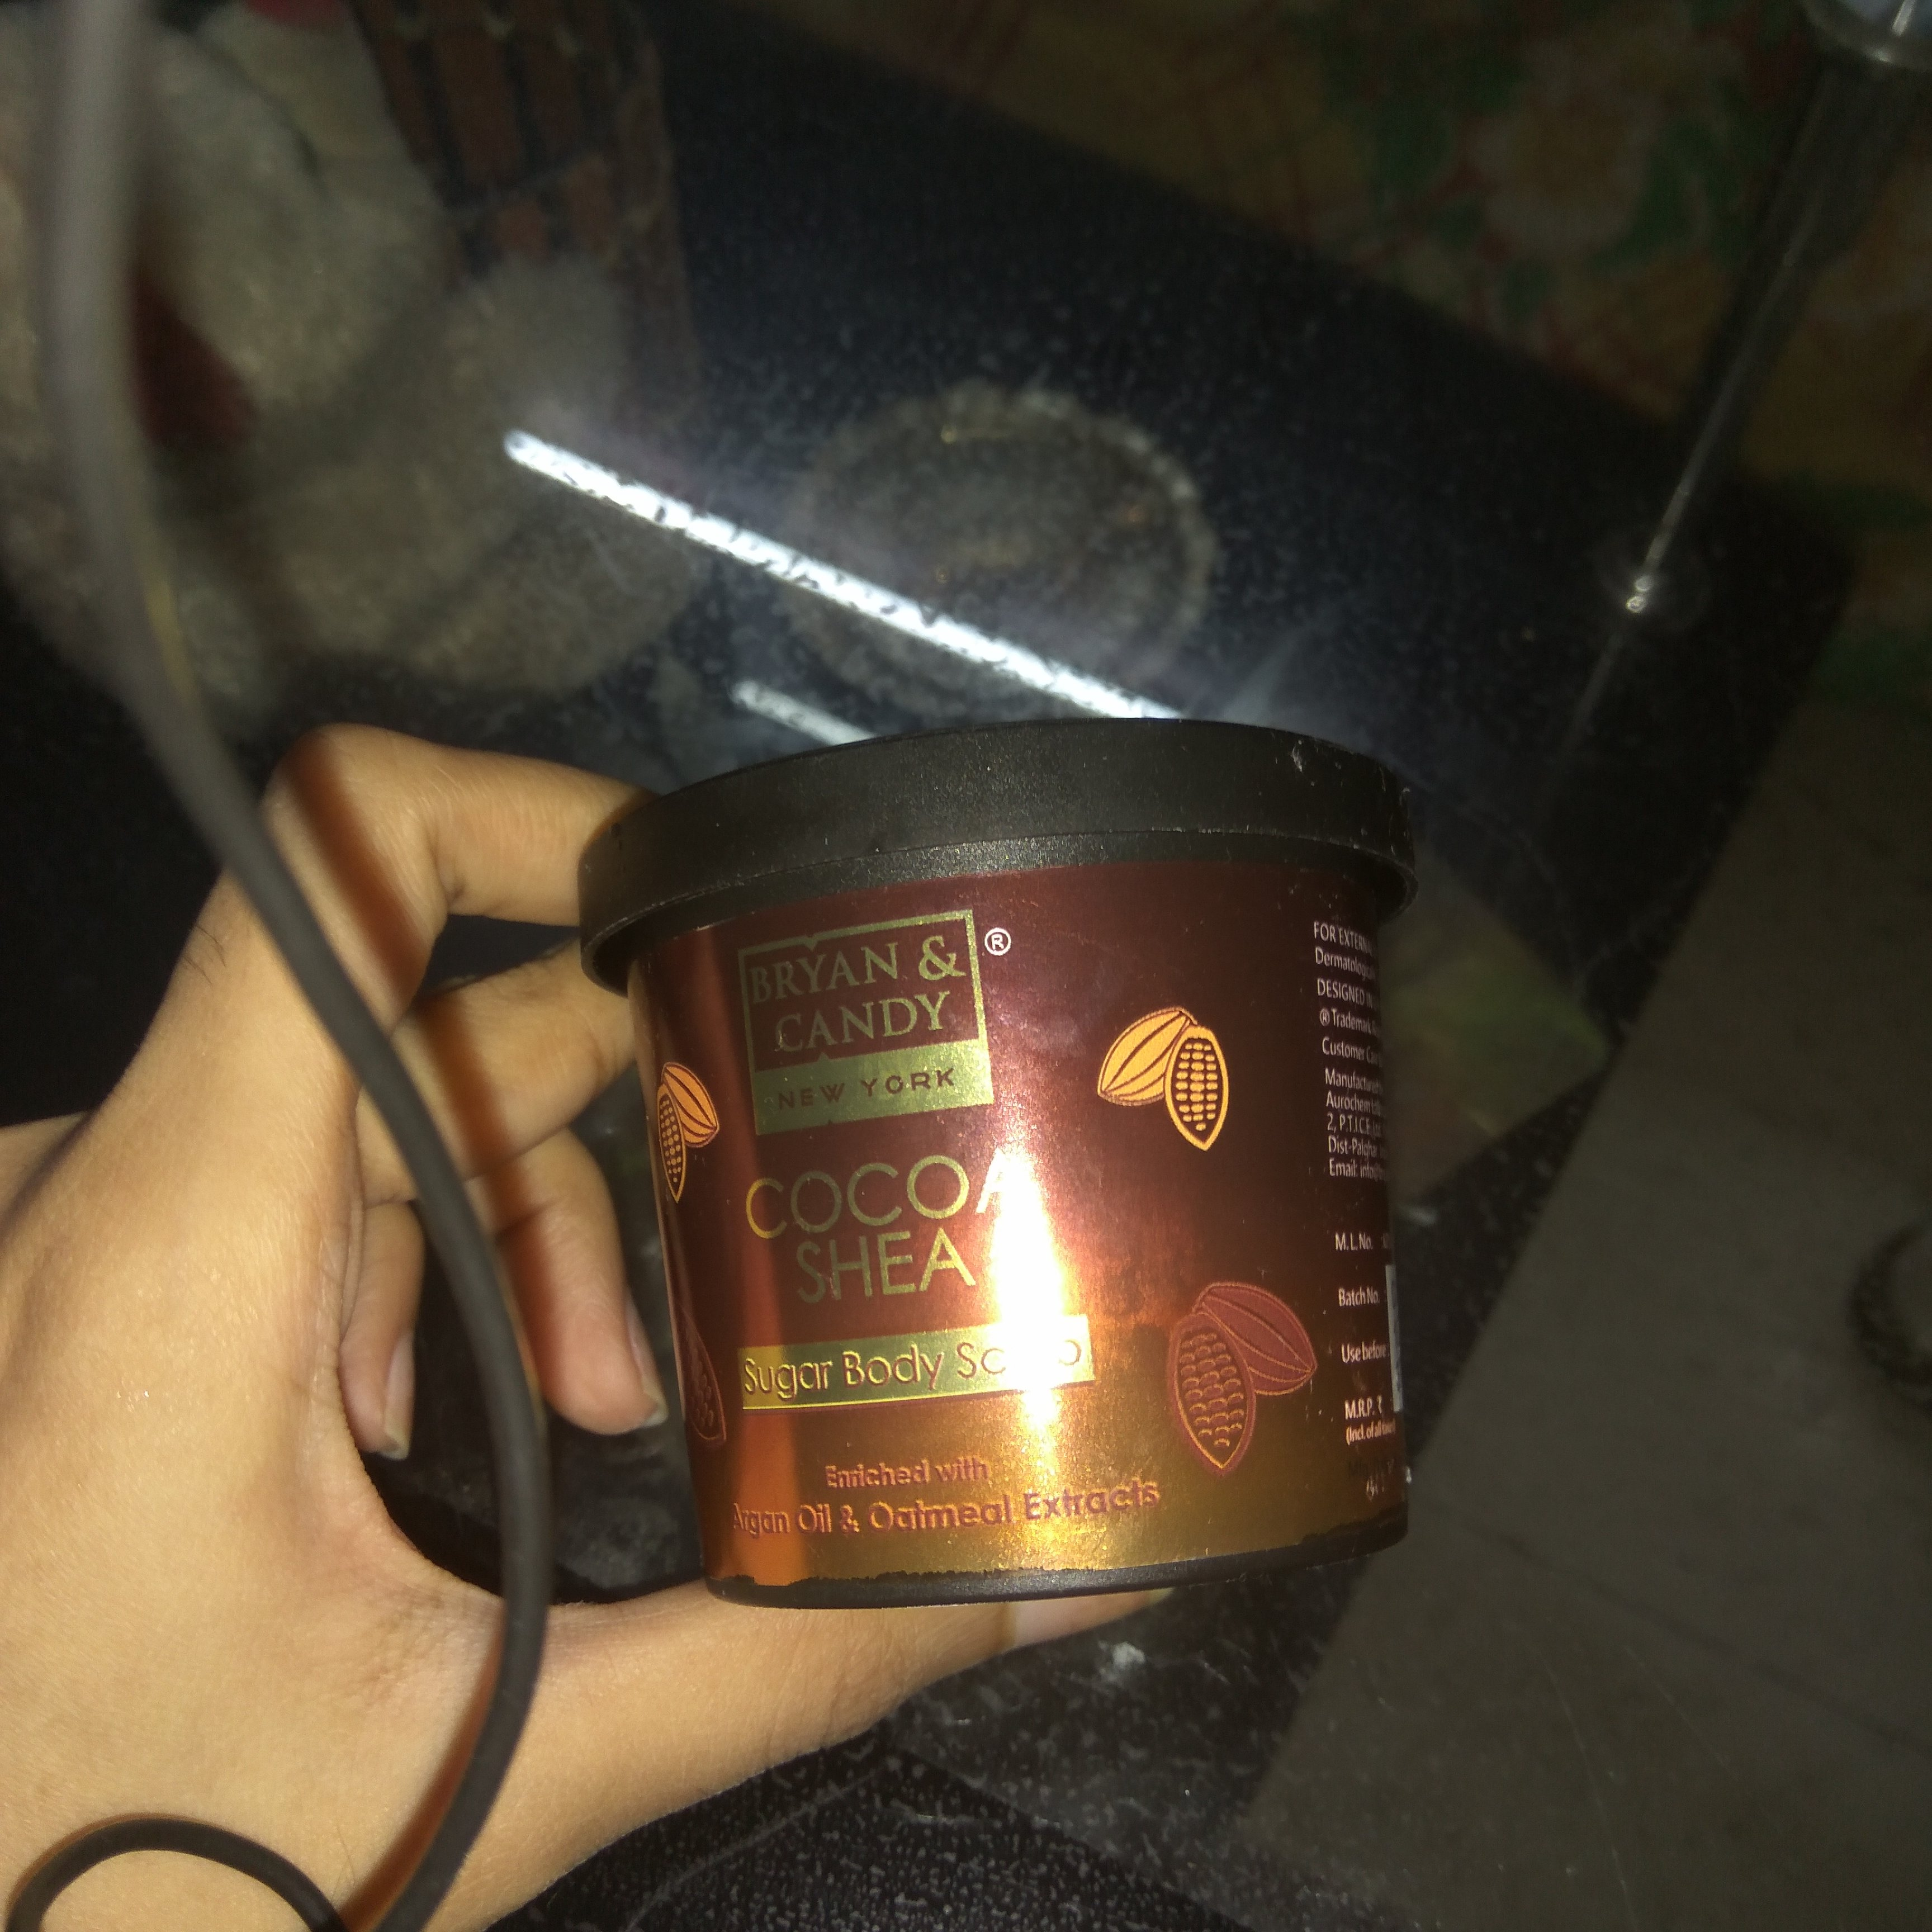 Bryan & Candy New York Cocoa Shea Sugar Body Scrub-Just love the cleansing property-By aanchal_saha